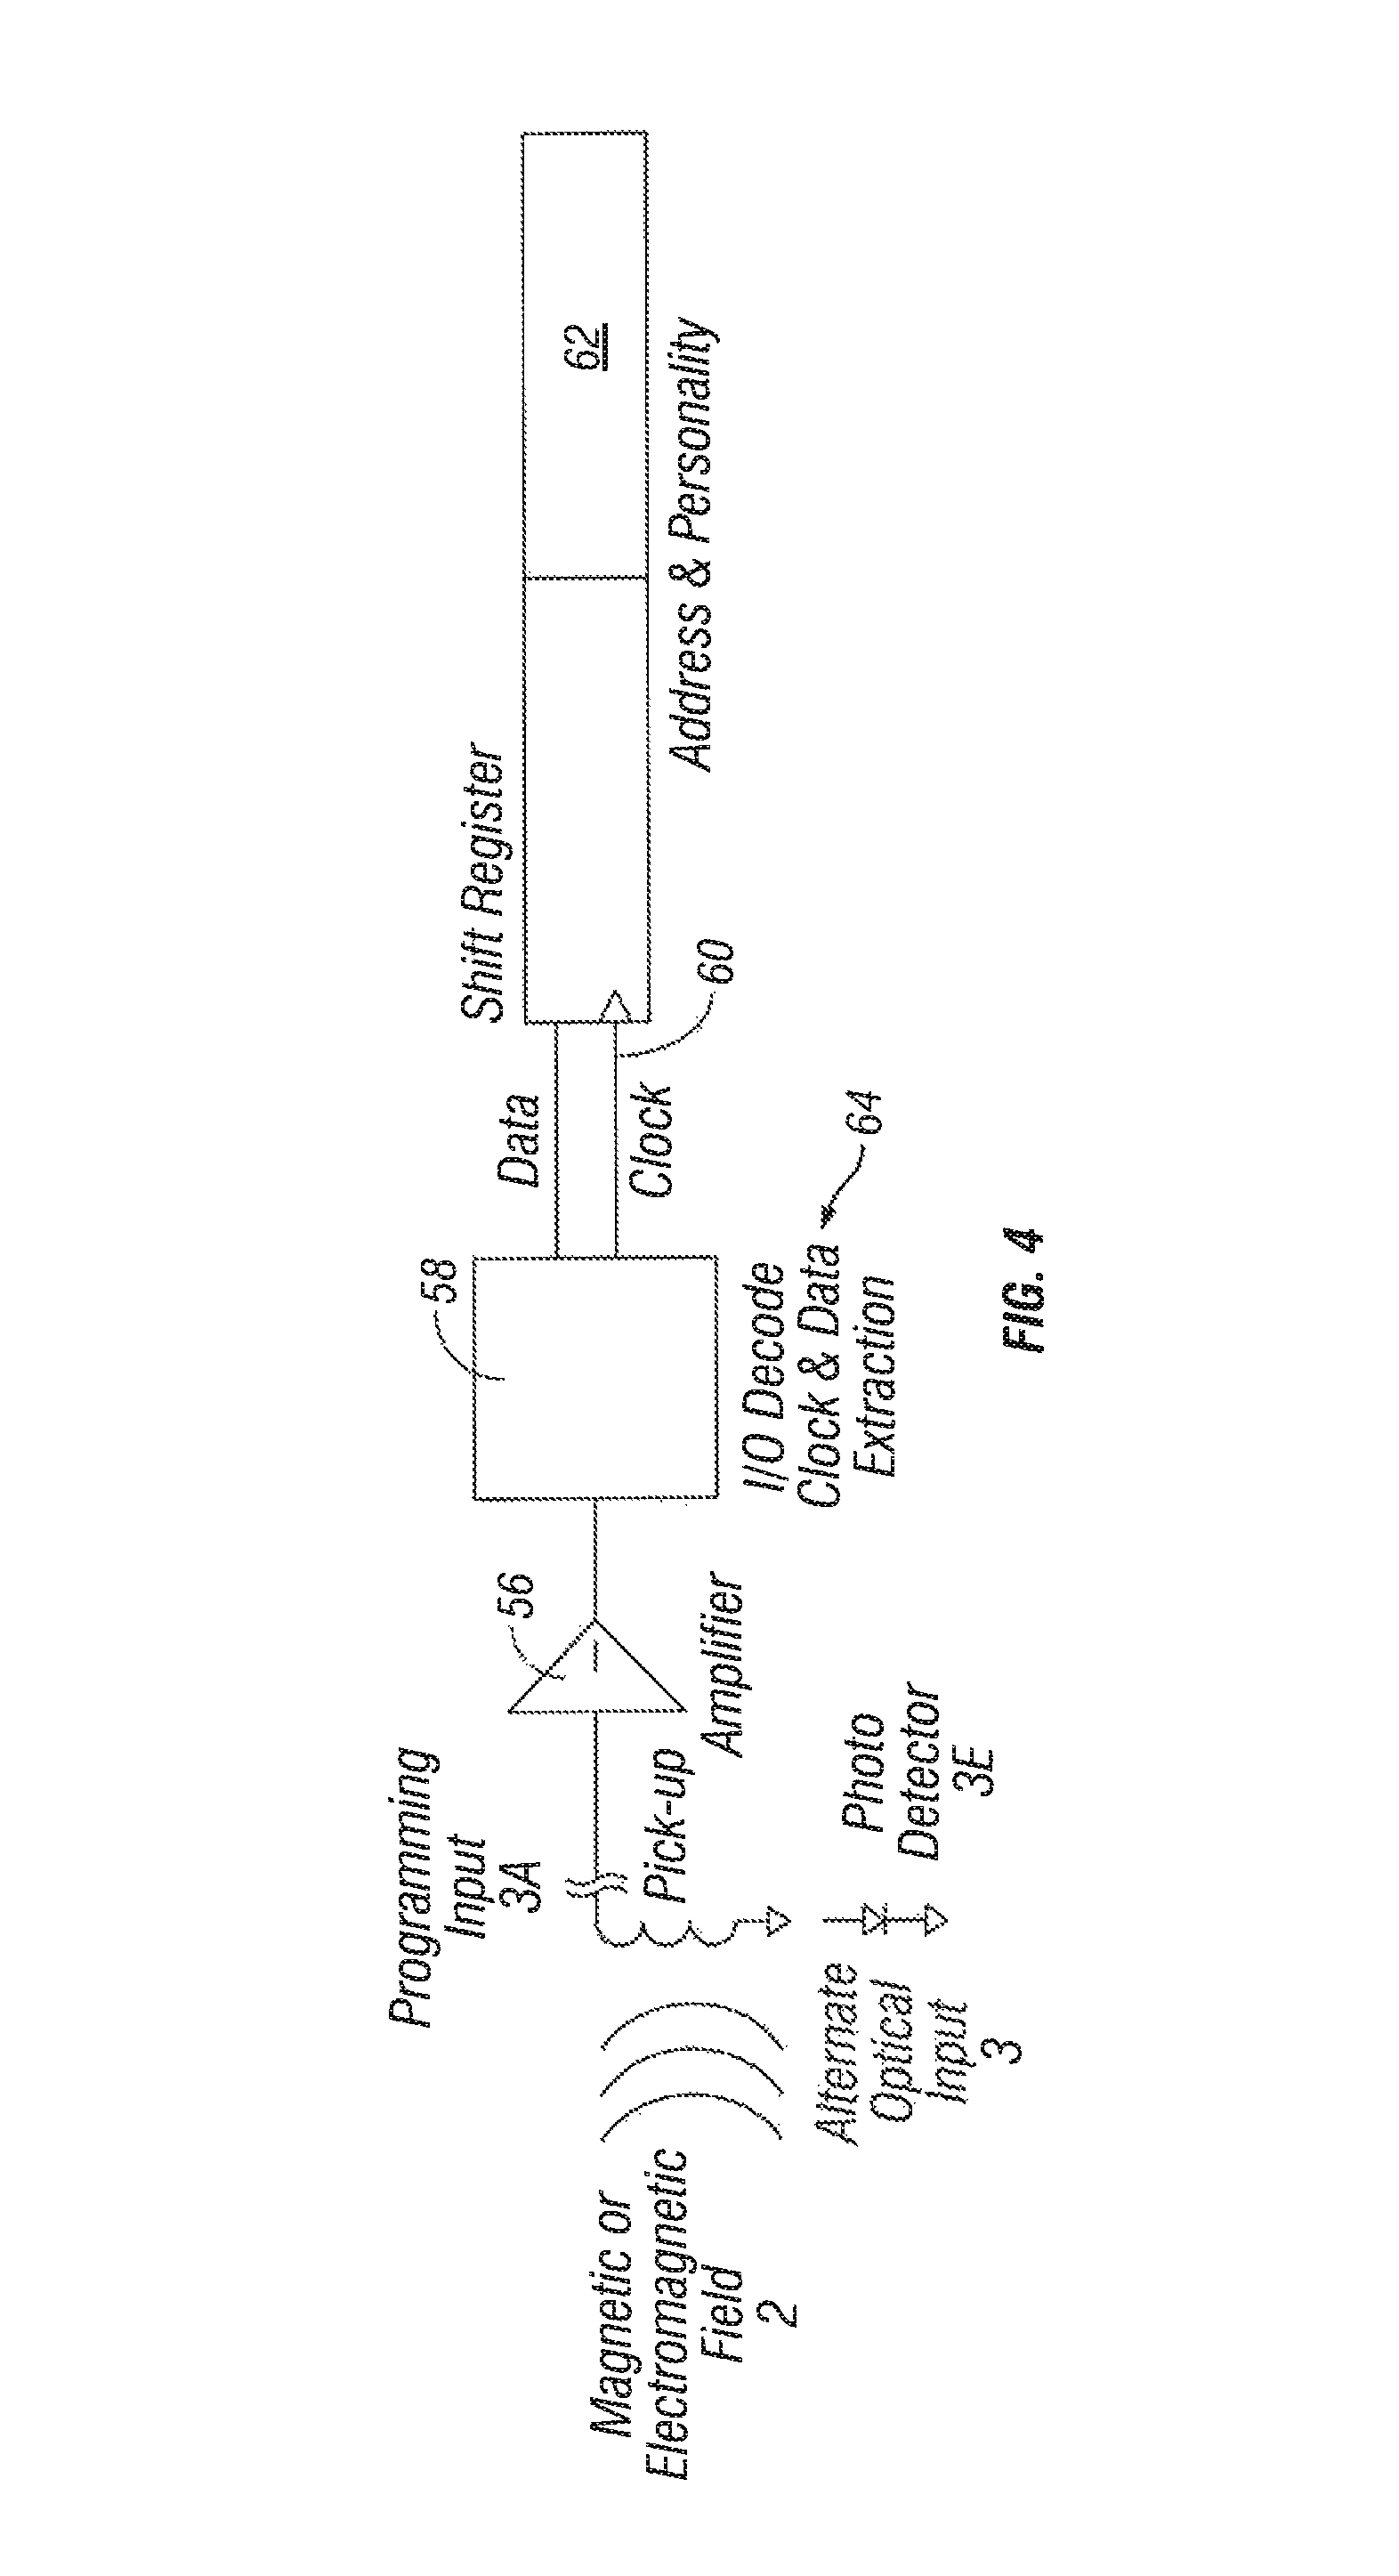 Patent Us 9420856 B2 Emg Block Diagram As Well Sensor Lifier Circuit Piezo On Capacitive Images